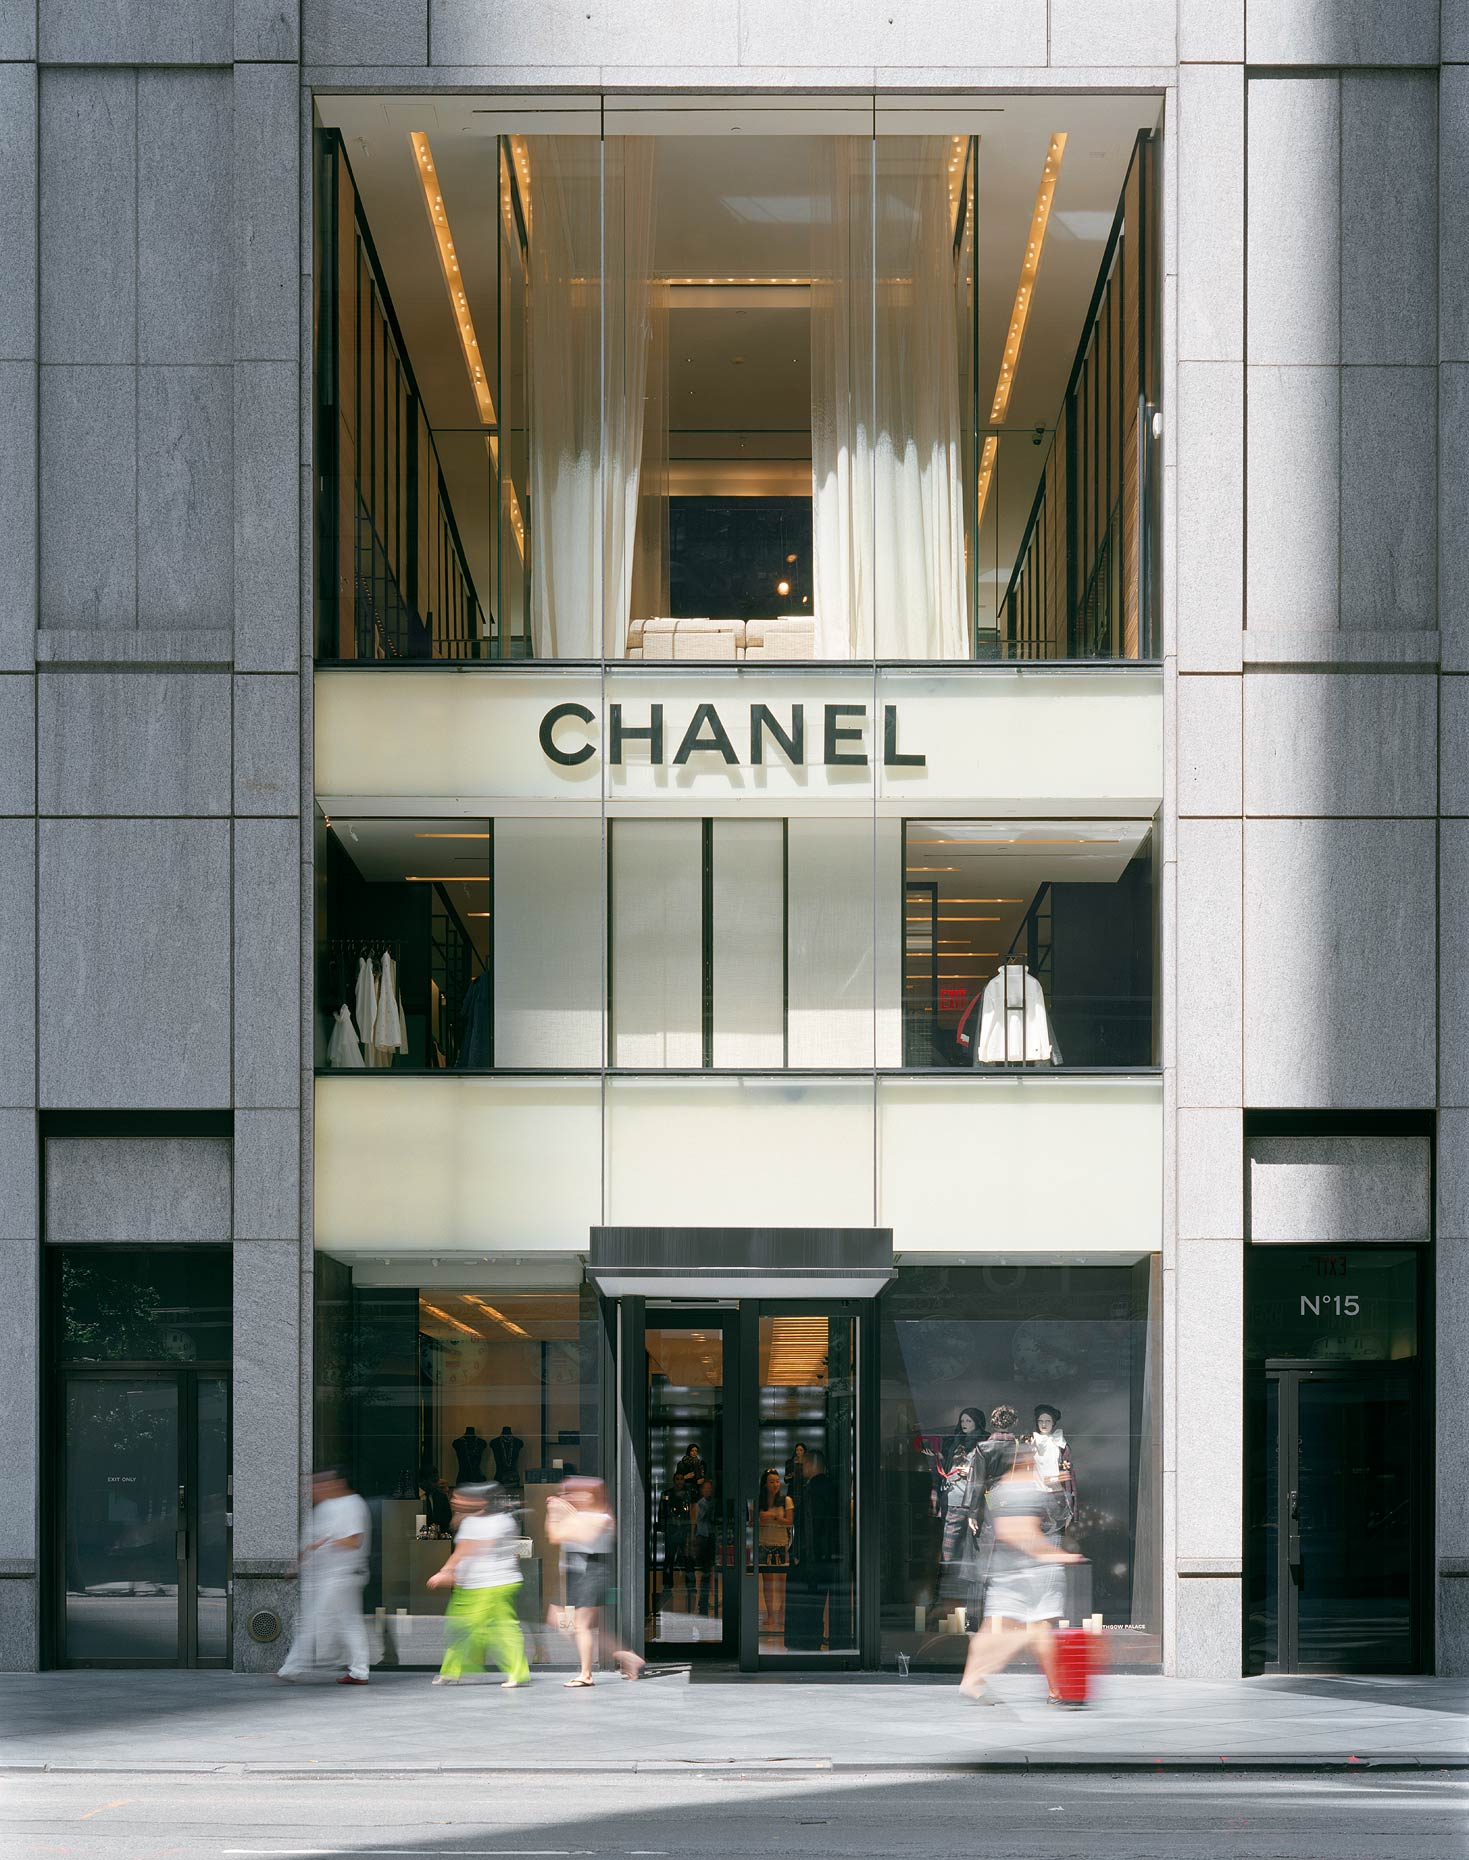 Chanel, 15 East 57th Street, New York, New York